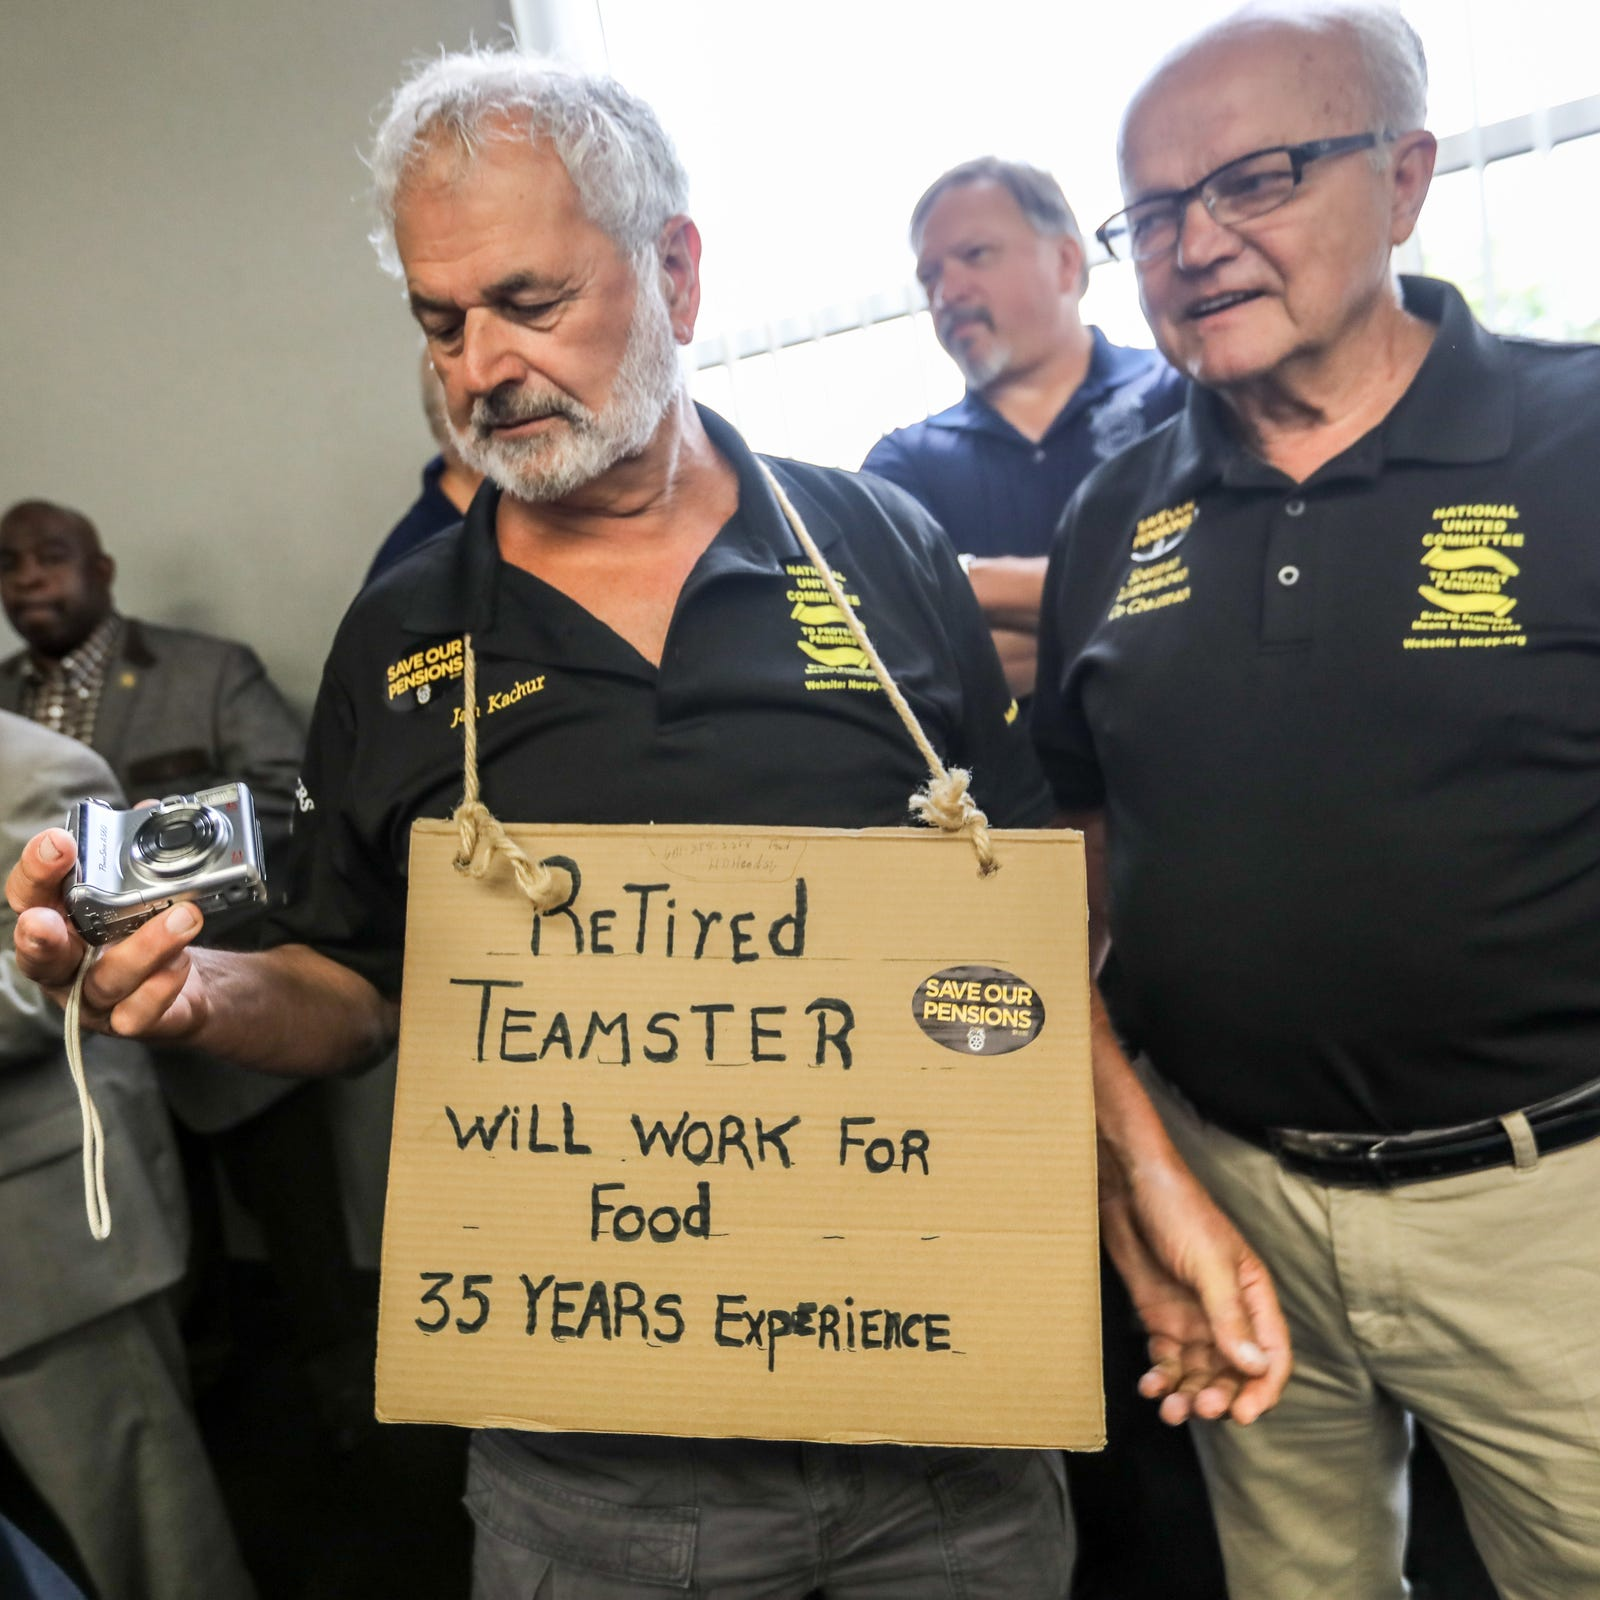 Jan D. Kachur, 75, of Deerfield, Mich. wears a homeless sign saying he will work for food after working for 35 years at Central Transport in Detroit, during a town hall to discuss pensions at the Teamsters Health and Welfare Building in Detroit on Friday, July 20, 2018.